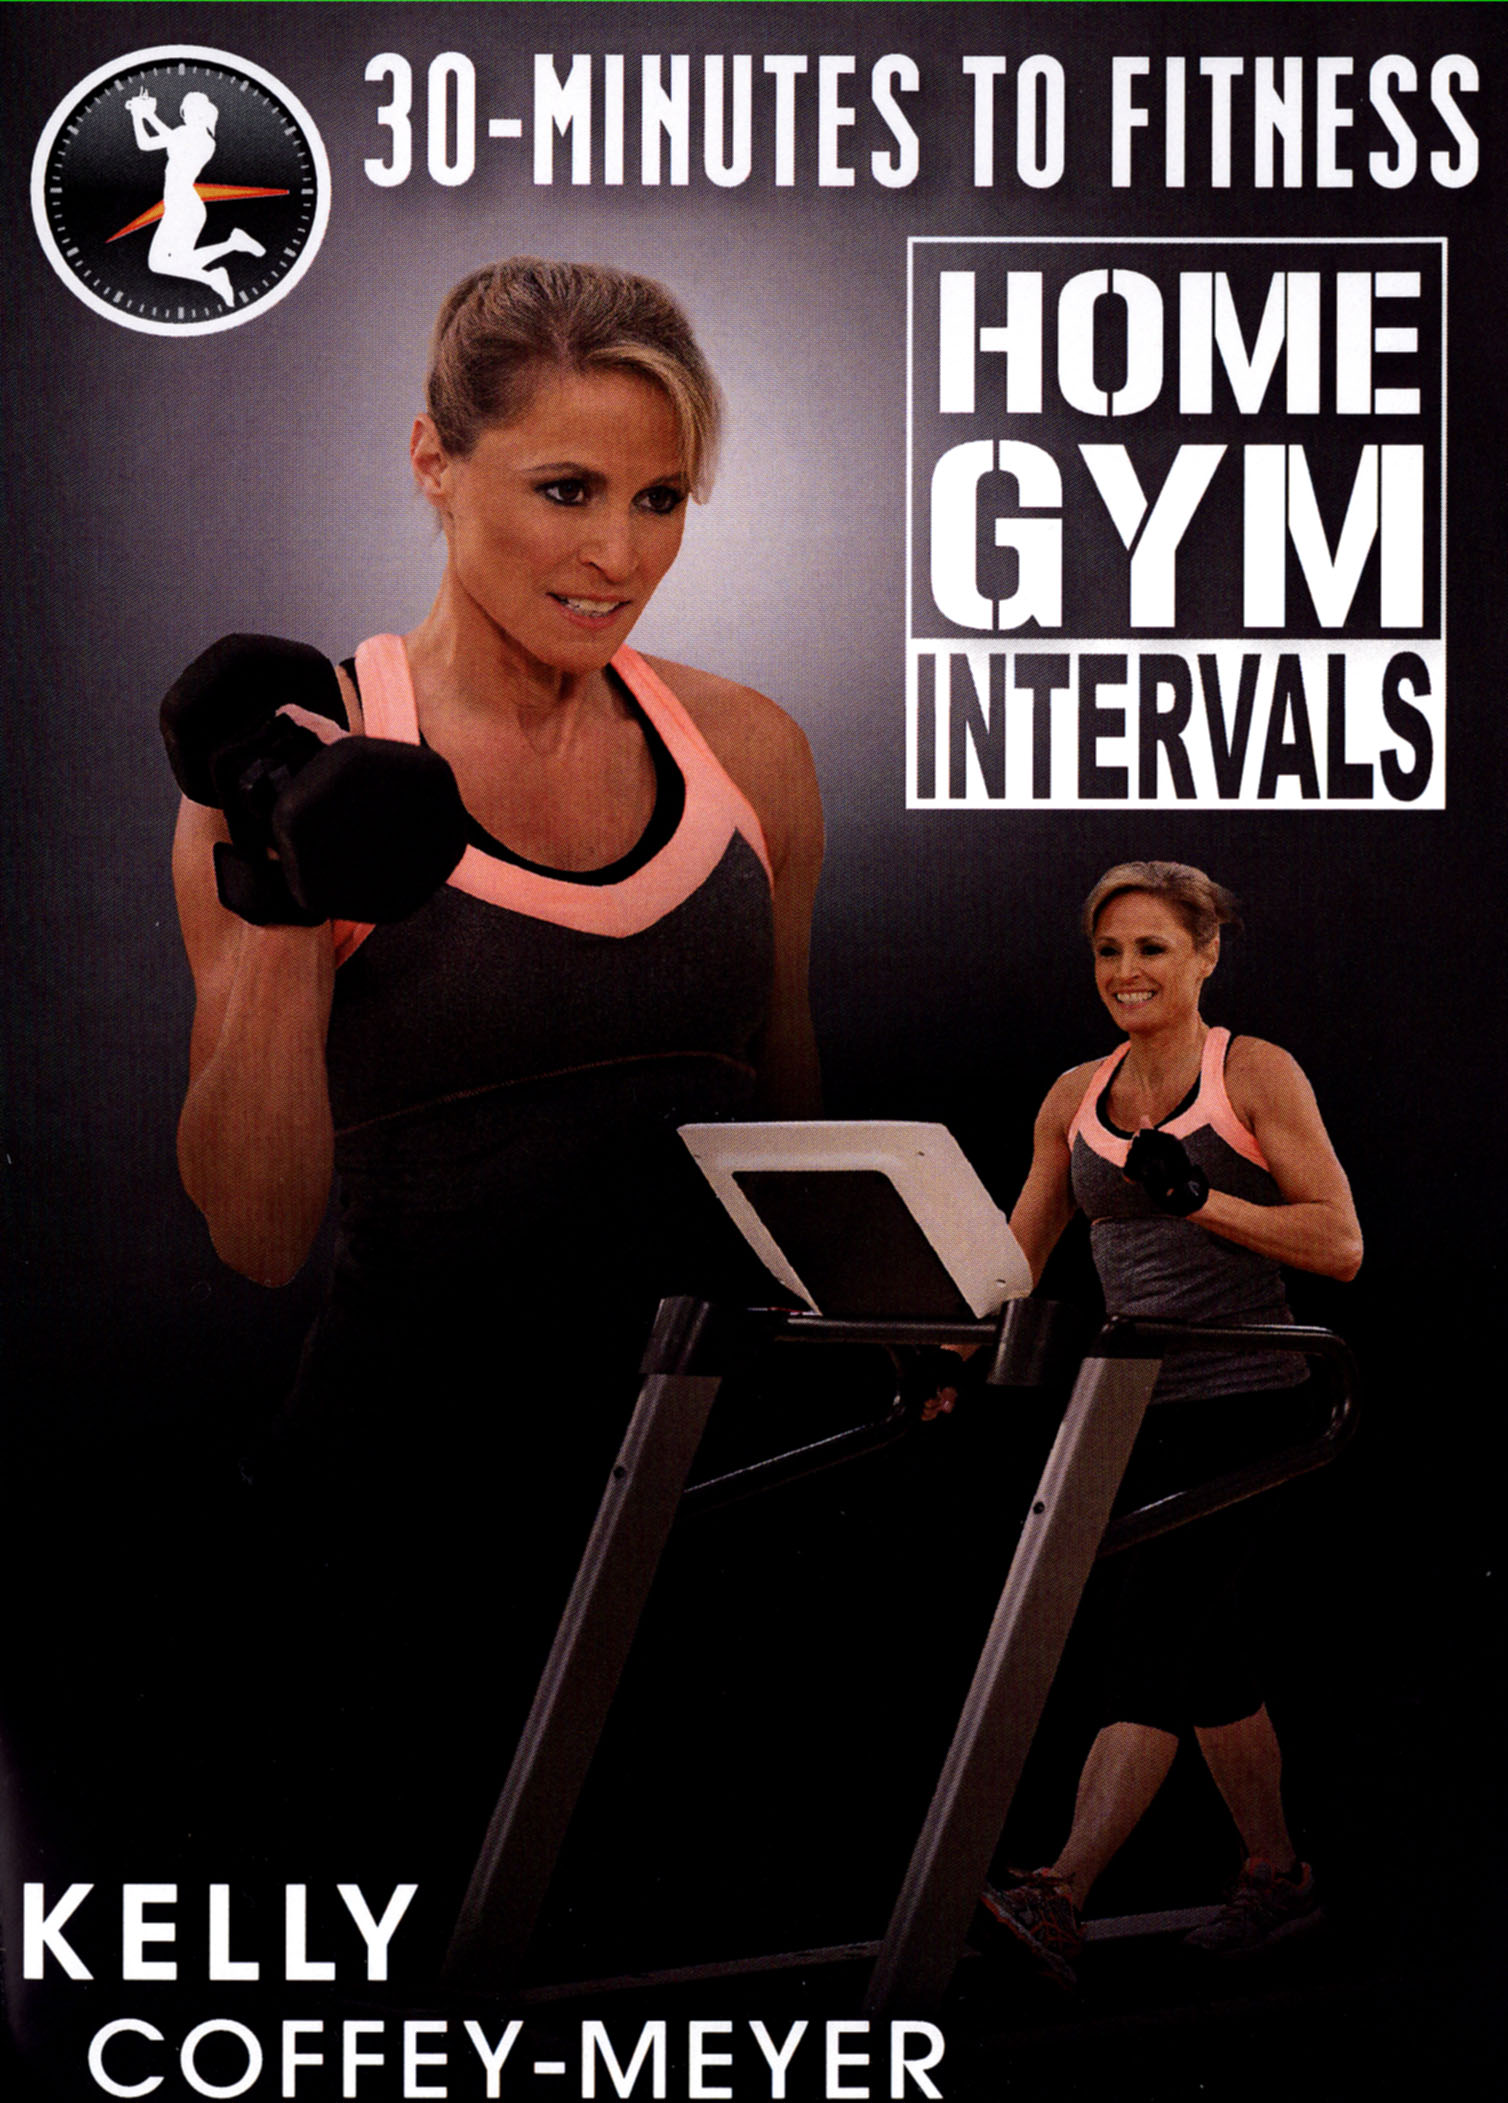 Kelly coffey meyer minutes to fitness home gym